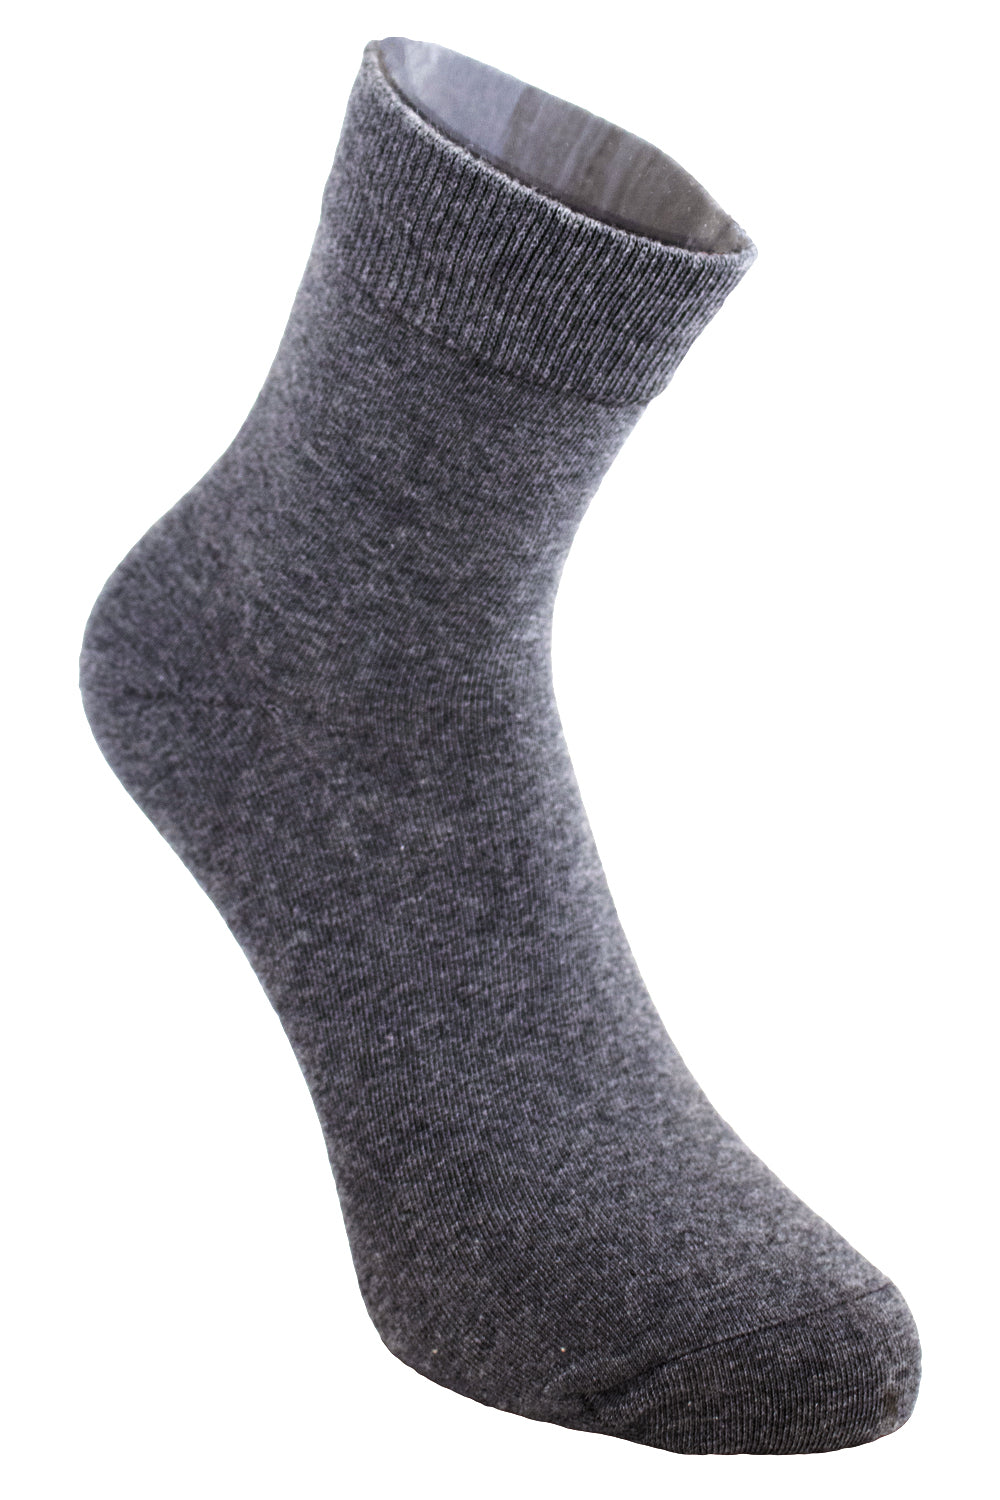 5 Day Mens Grey High Top Sock